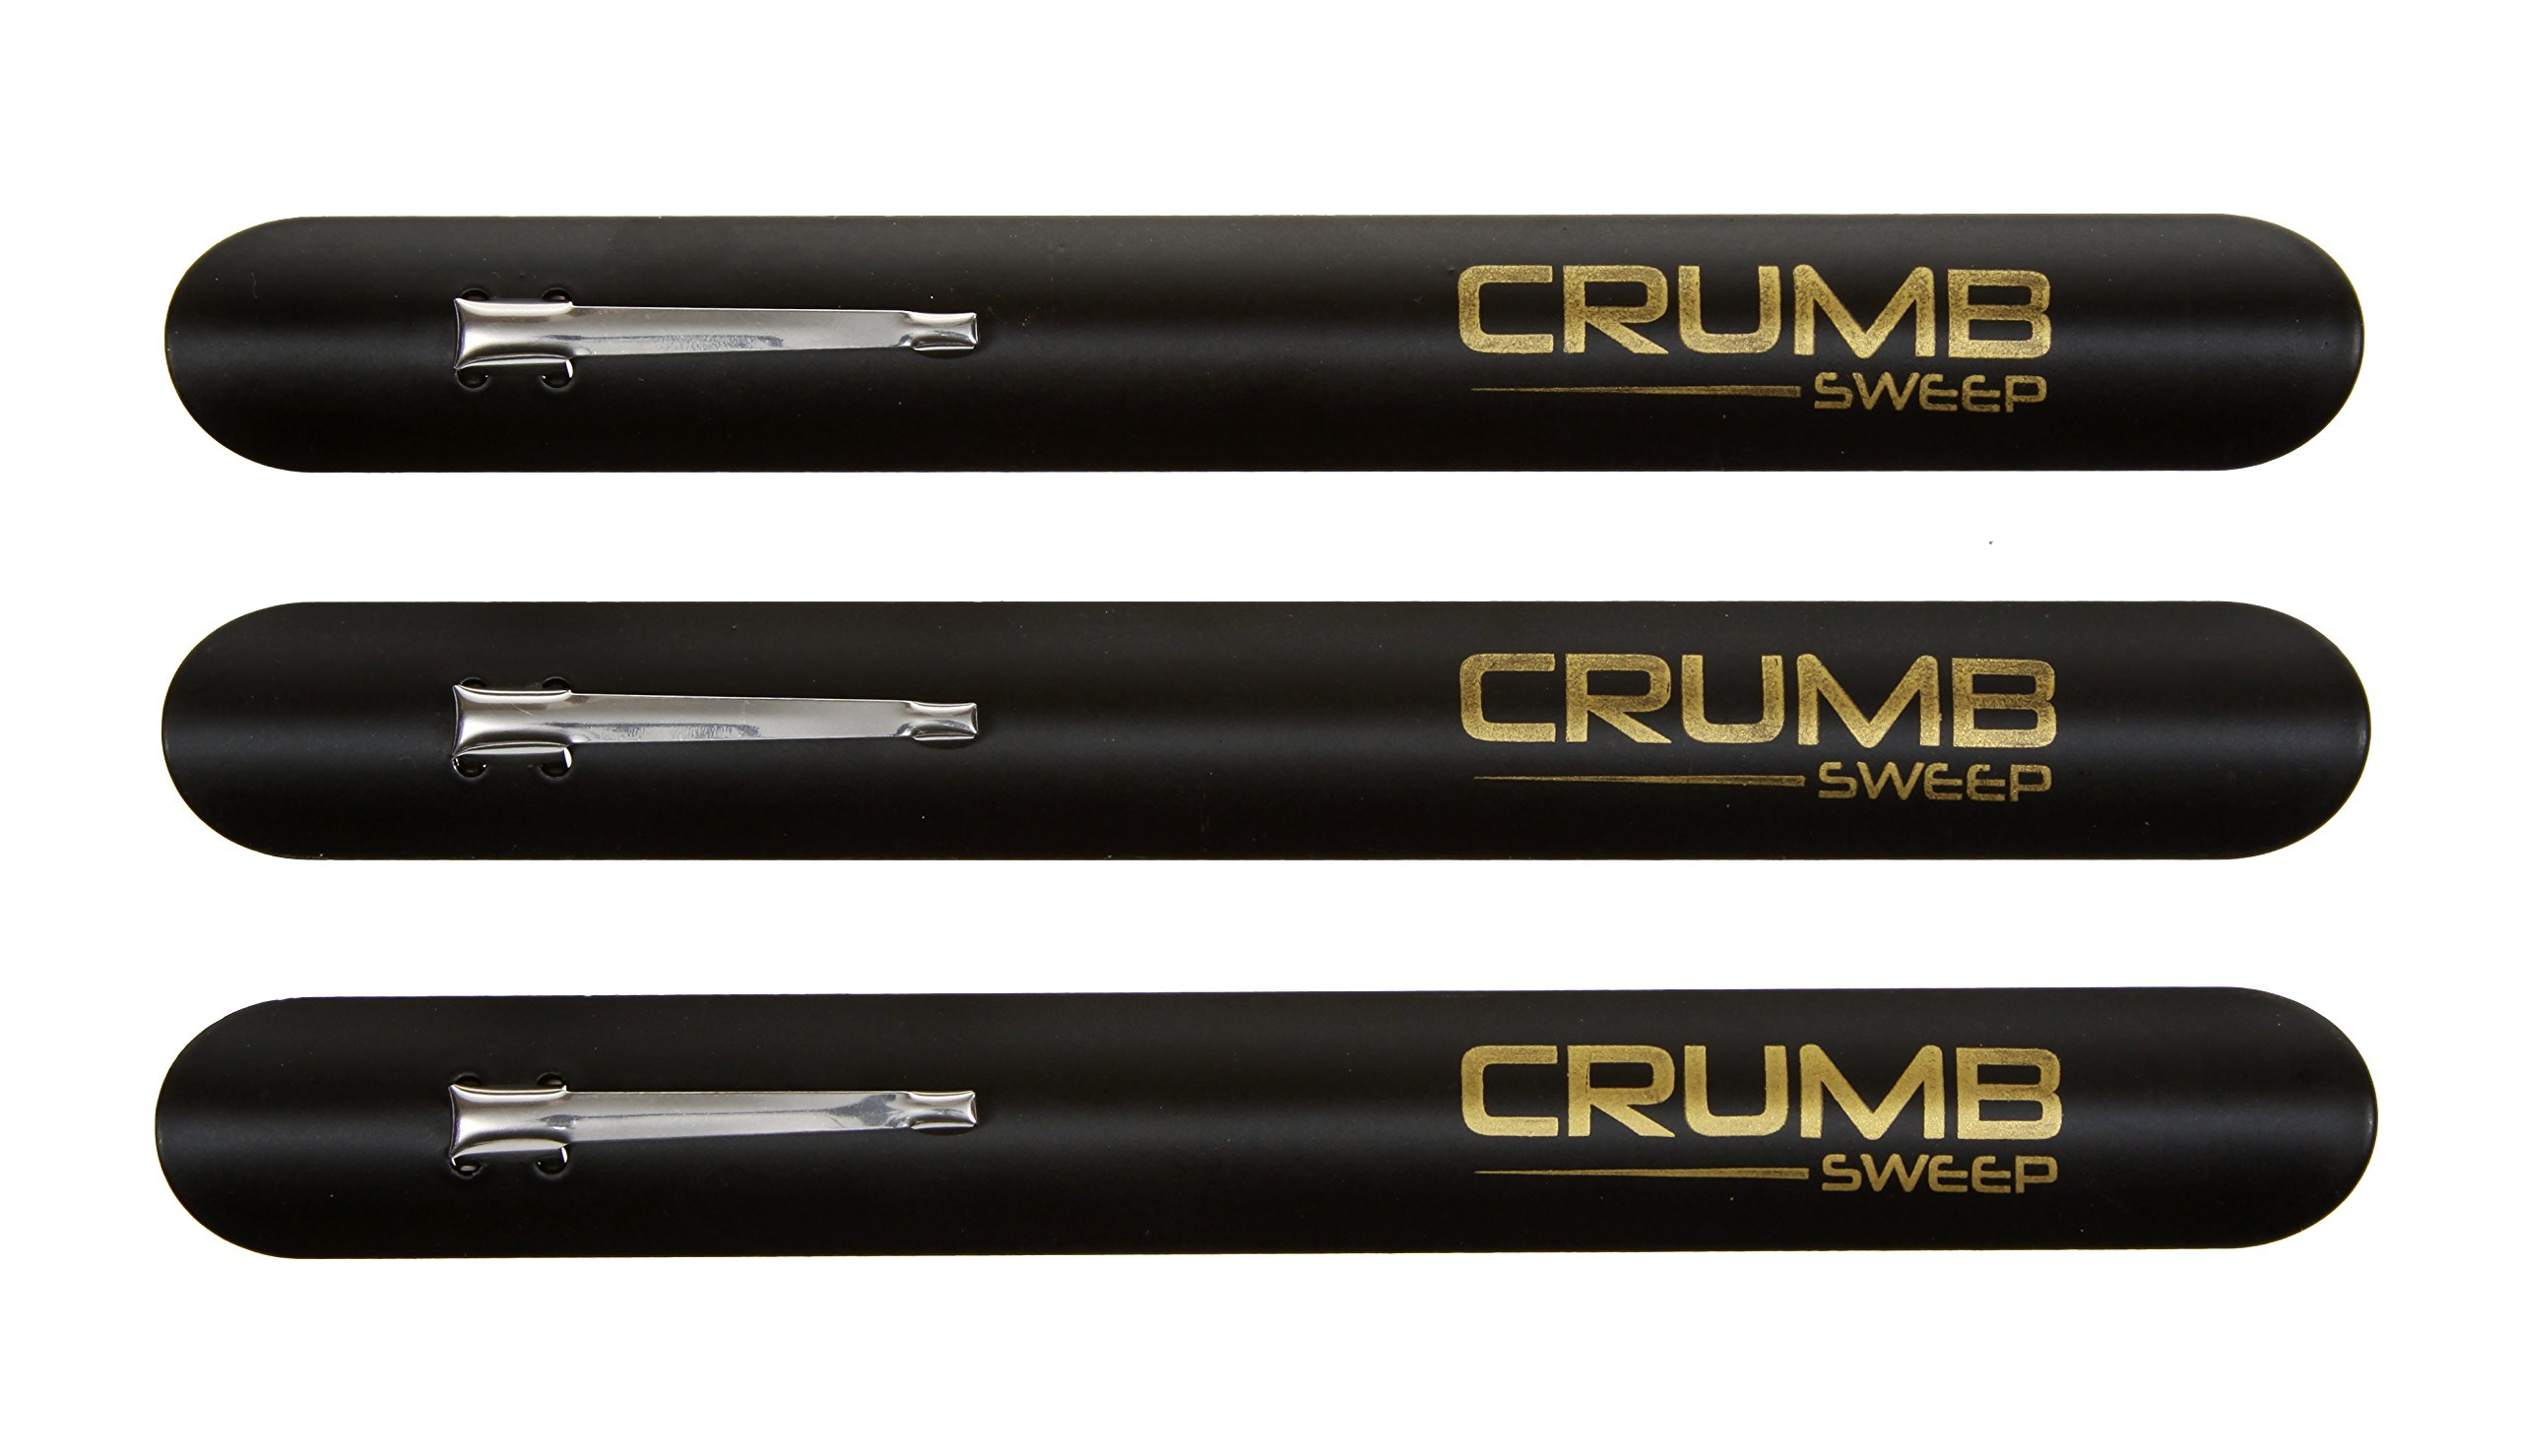 The Crumb Sweep, crumber tool - 3 crumbers in a package. Ideal for the busy restaurant waiter, waitress and server